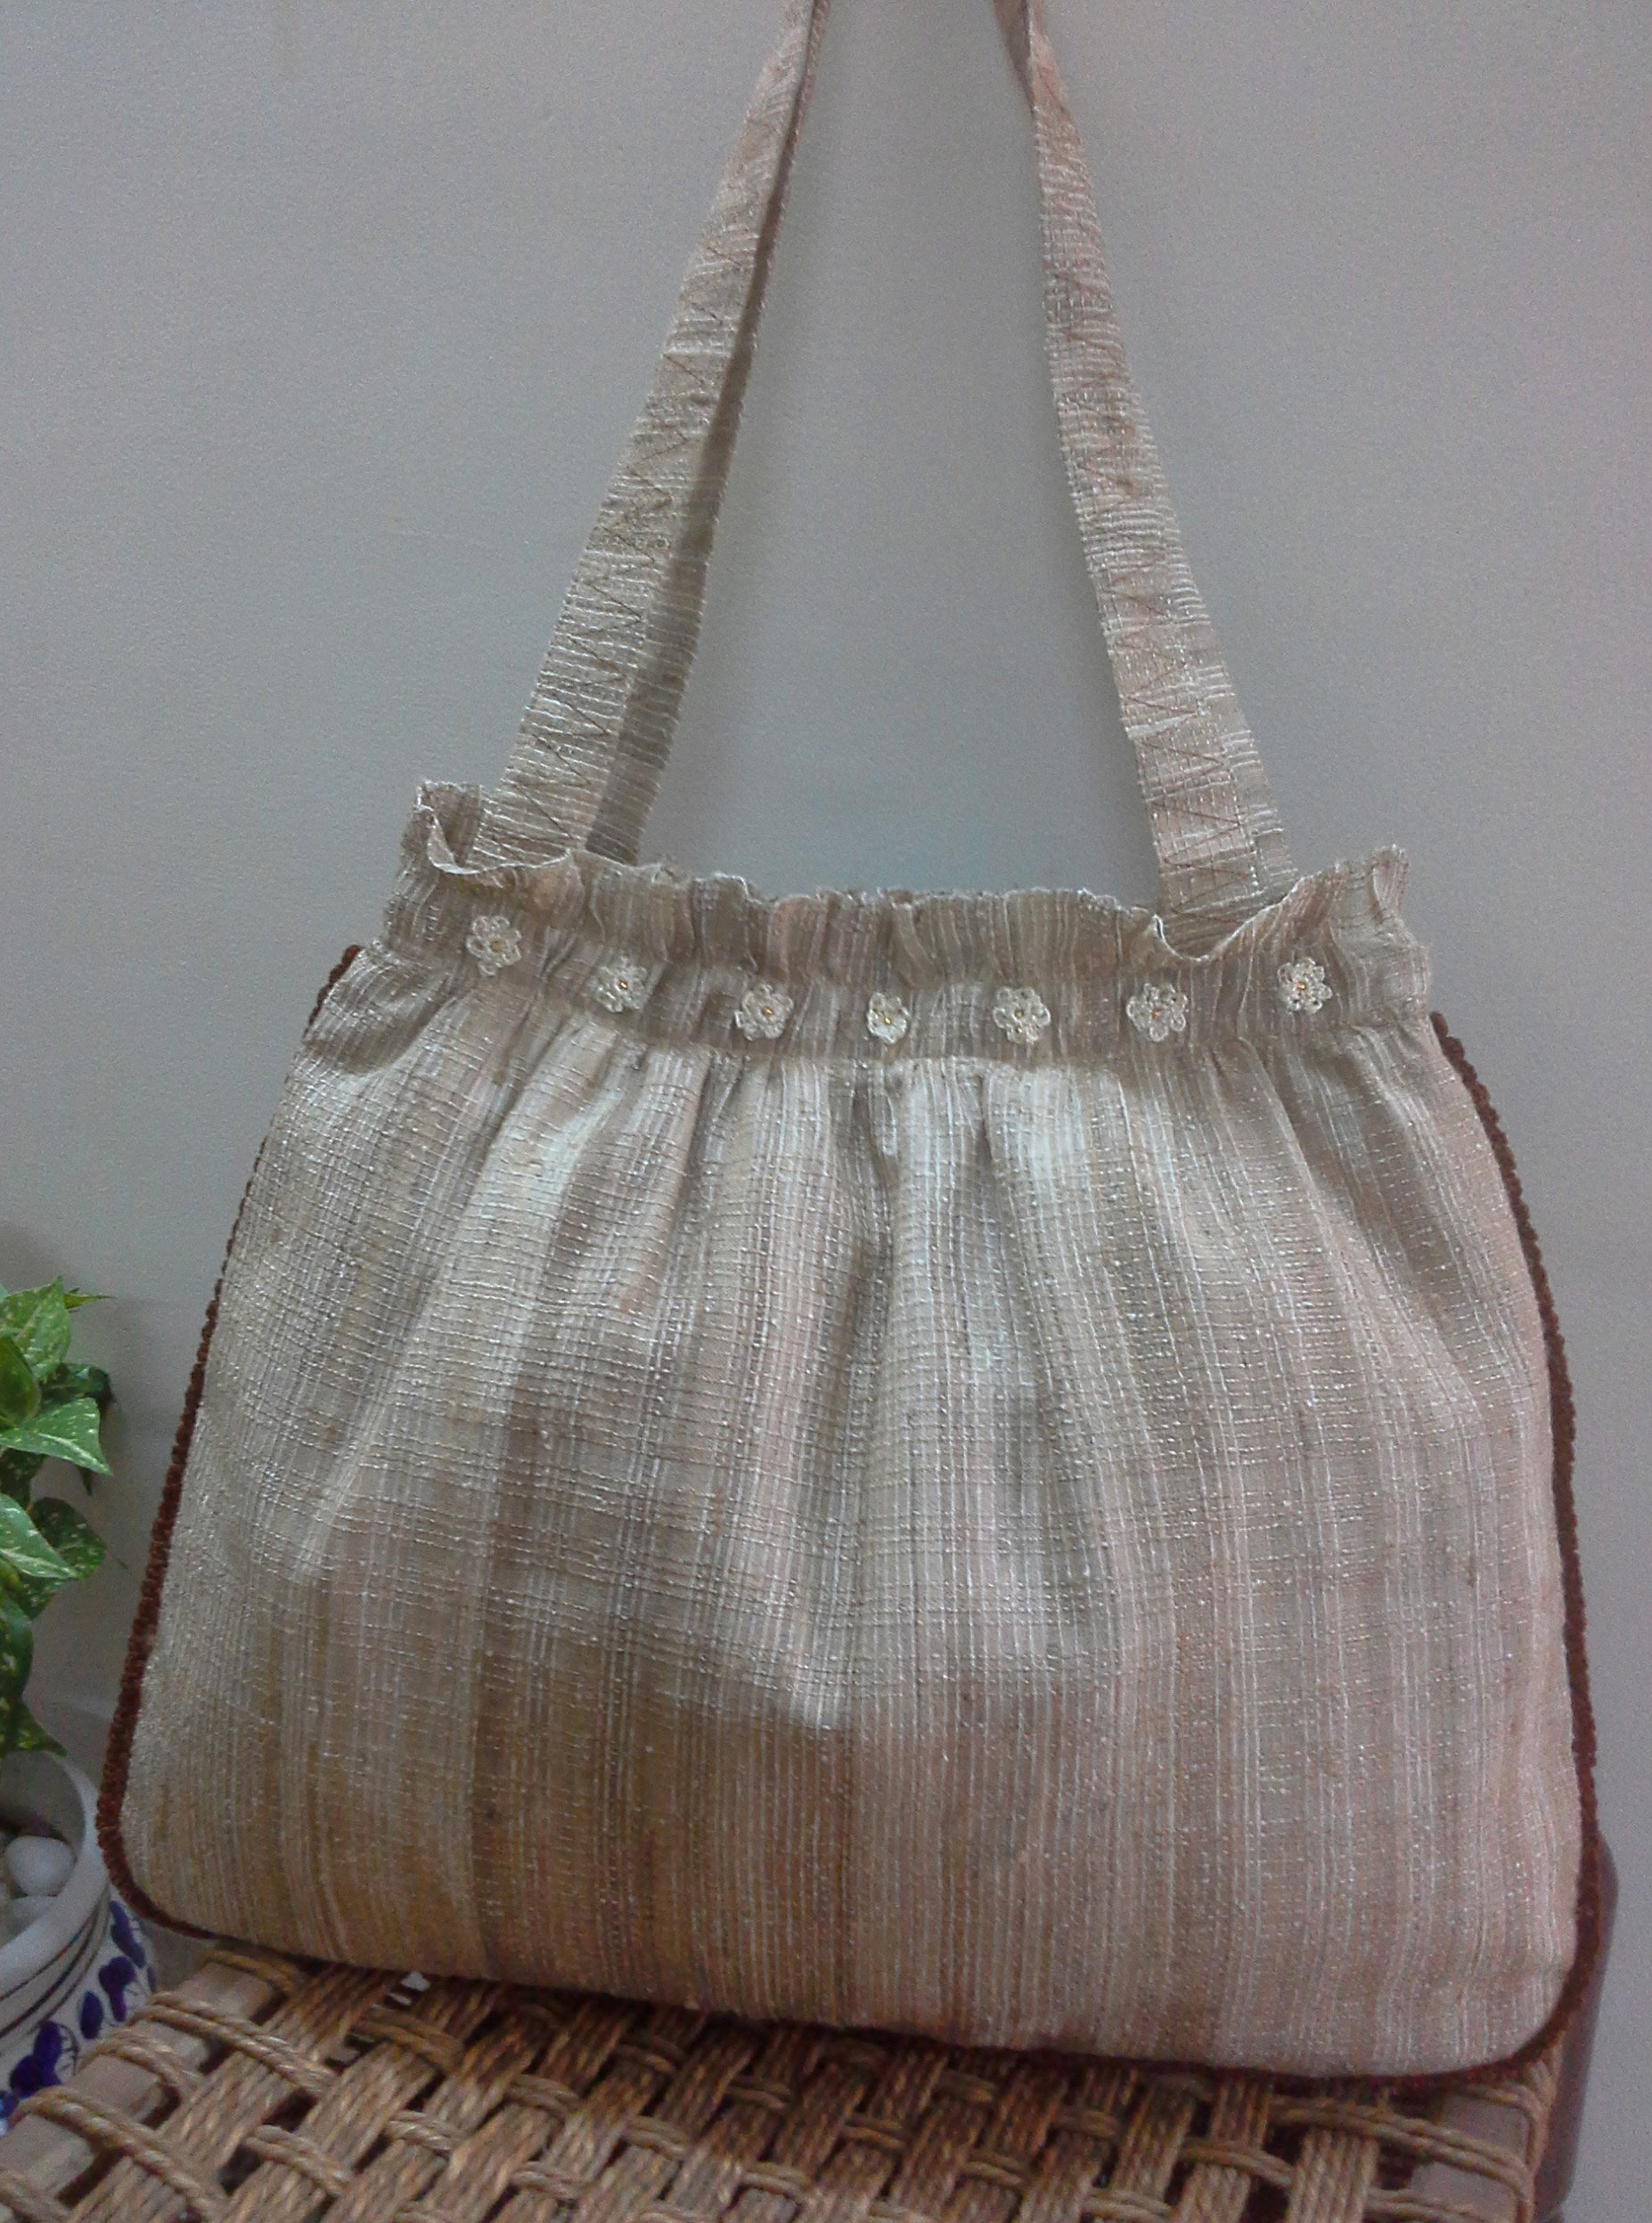 Panigha India Handmade Tote Bag made of Linen/Silk blended textured fabric in Natural color decorated with handmade crochet flowers and lace around the edge. - handmade-bags